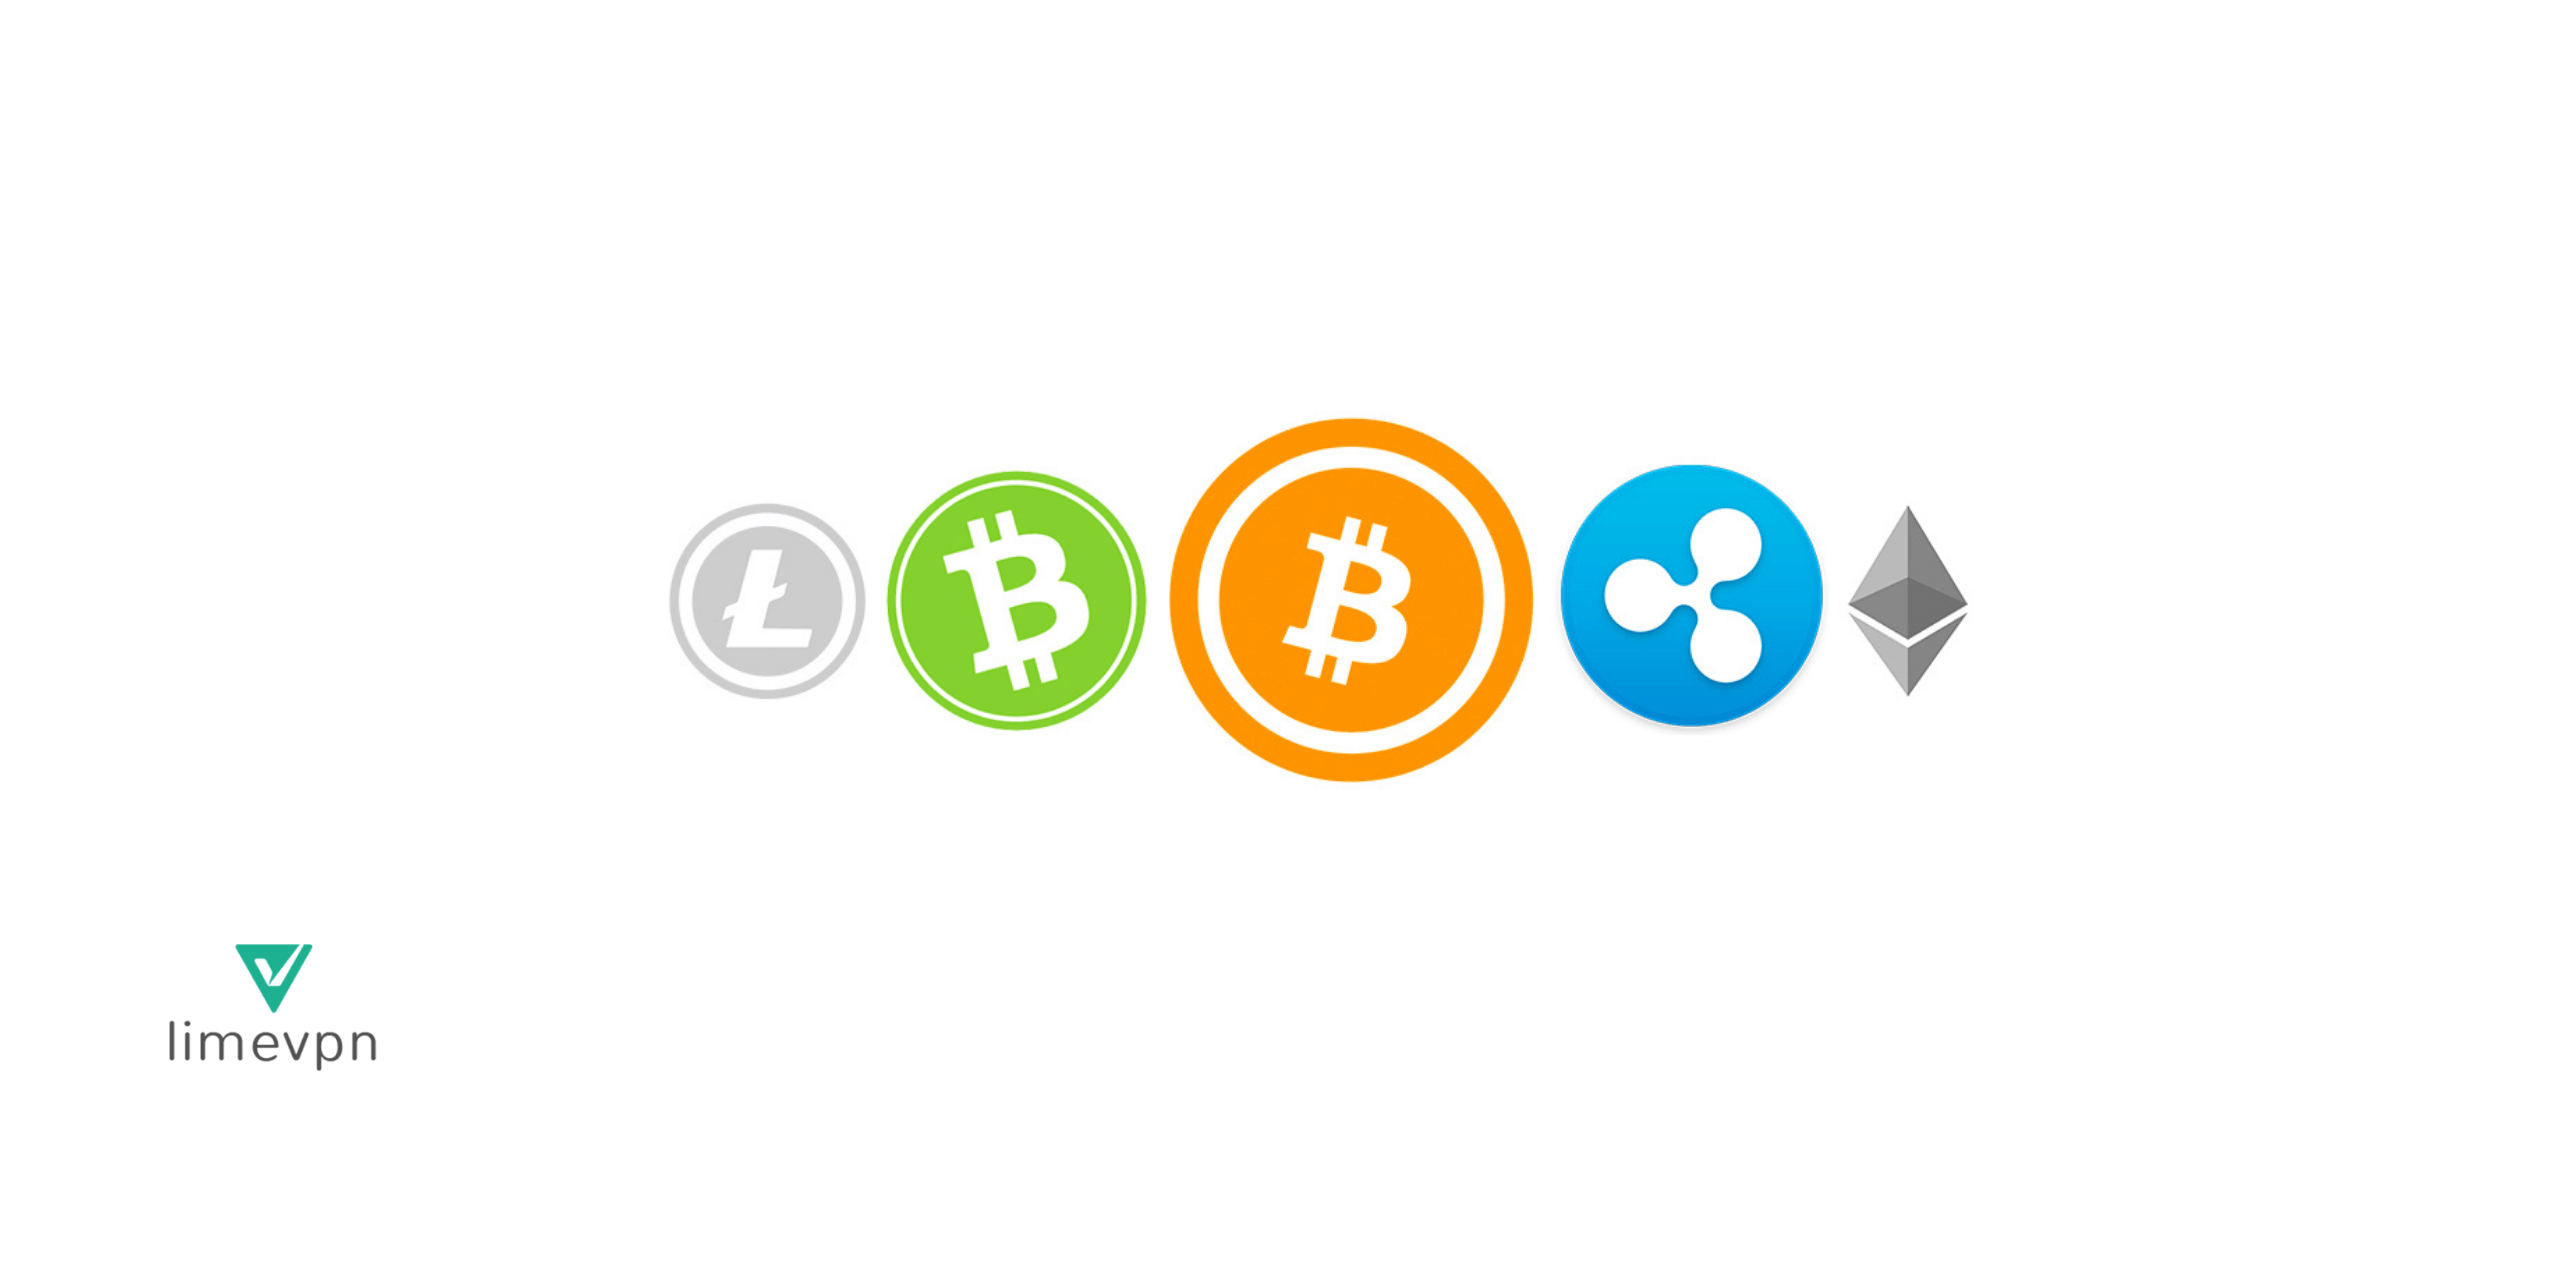 Why You Should Use A VPN When Working with Cryptocurrencies